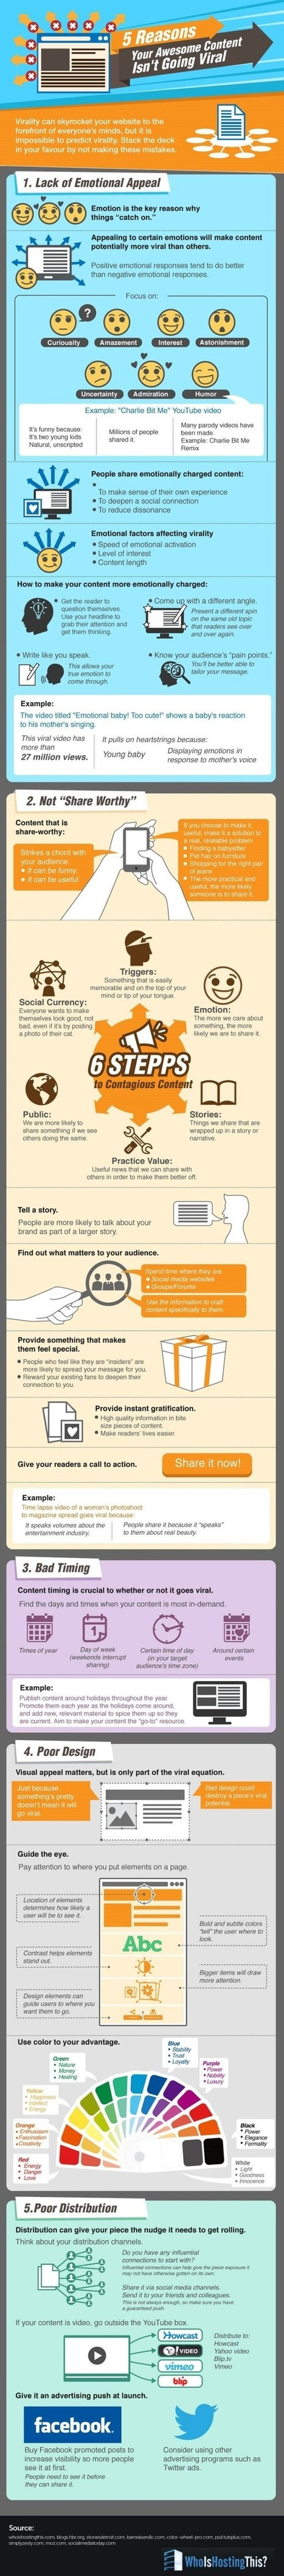 Check These 5 Tactics to Make Your Content Go Viral #infographic | MarketingHits | Scoop.it